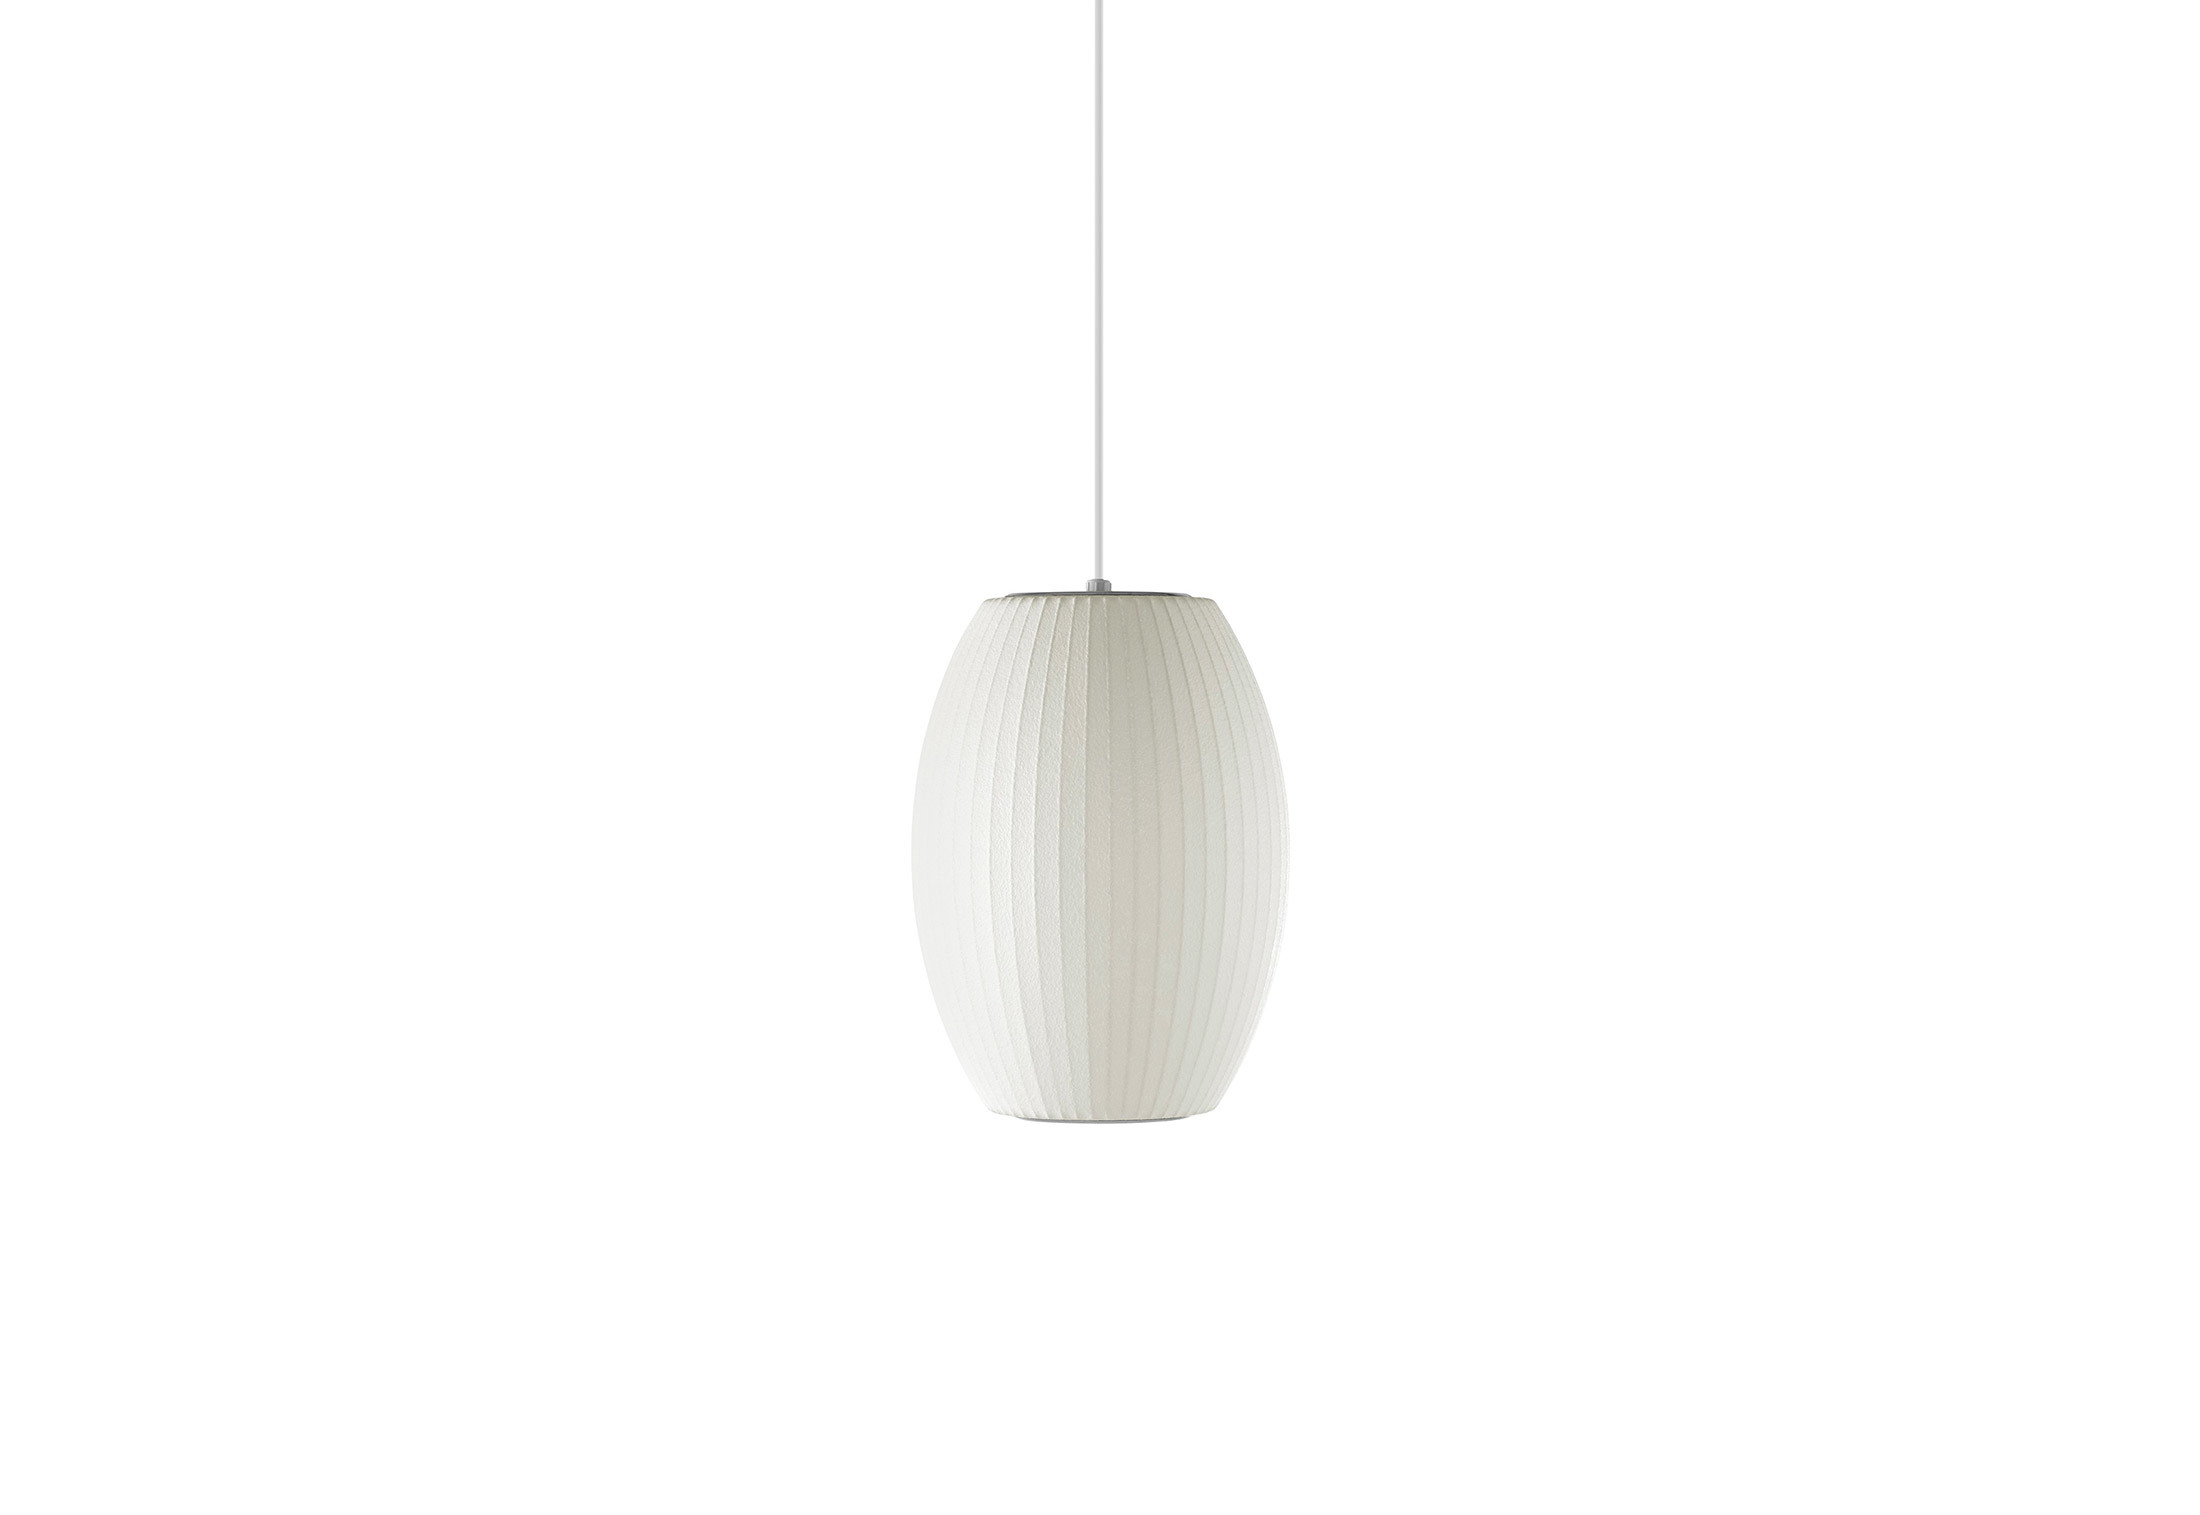 Nelson Cigar Bubble Pendant Lamp By Herman Miller Stylepark